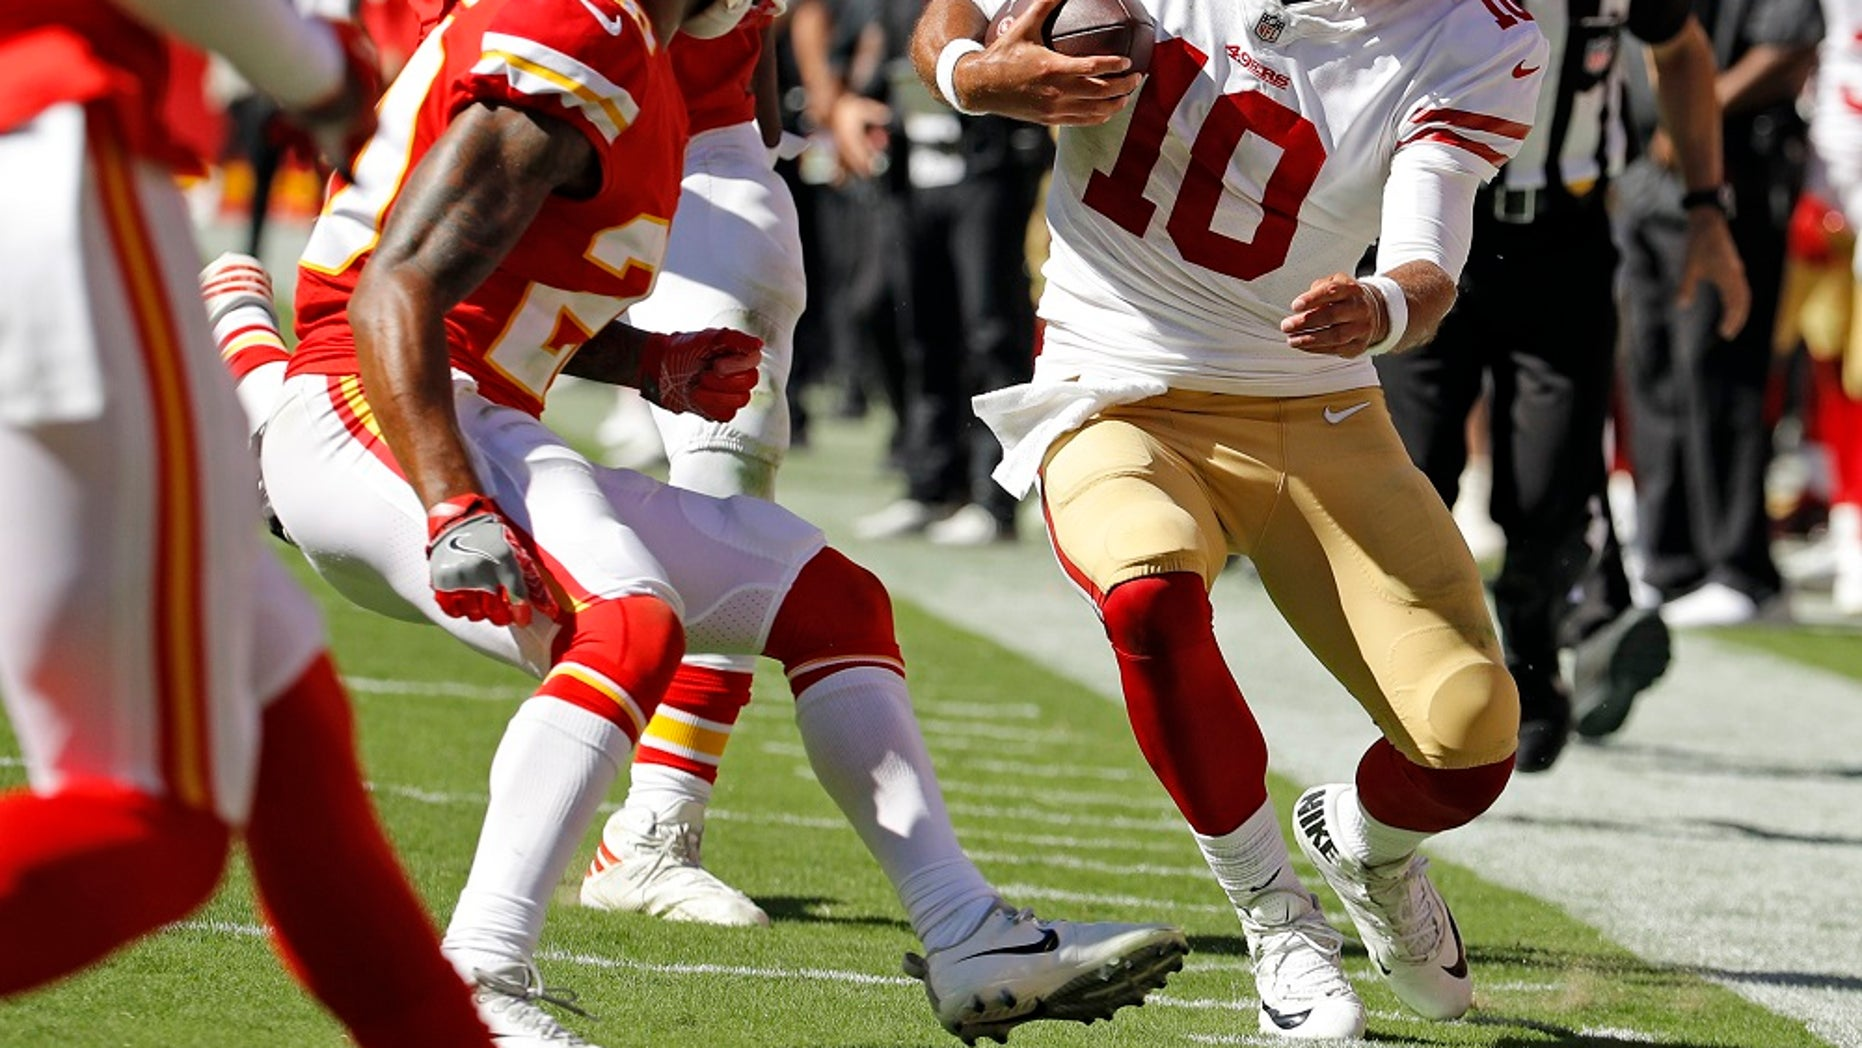 FILE: Kansas City Chiefs defensive back Steven Nelson (20) closes in to tackle San Francisco 49ers quarterback Jimmy Garoppolo (10), right, during the second half of an NFL football game in Kansas City, Mo.